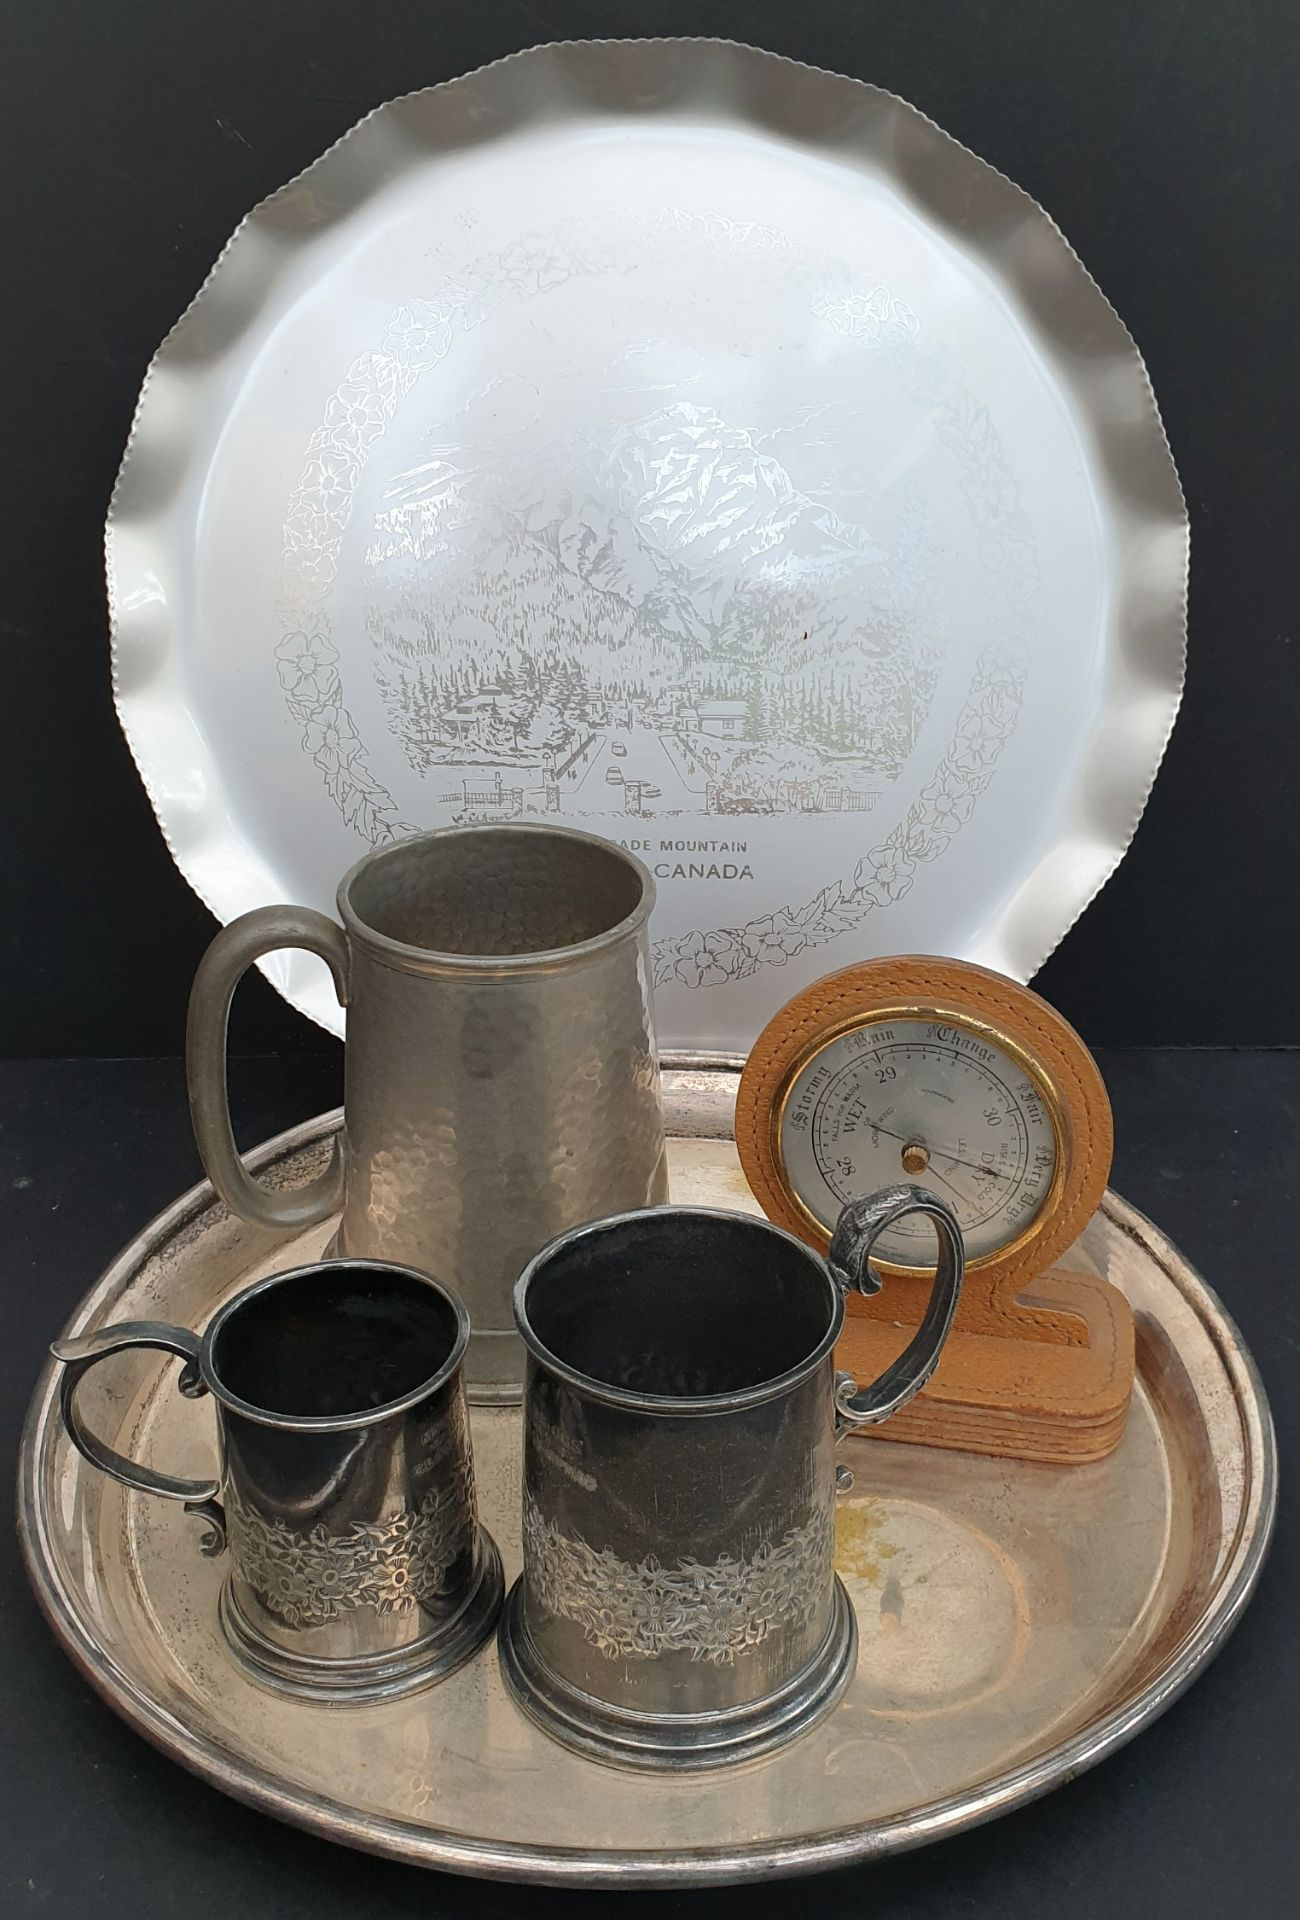 Lot 29 - Antique Vintage Tray of Plated Ware Pewter Ware & Travel Barometer. NO RESERVE